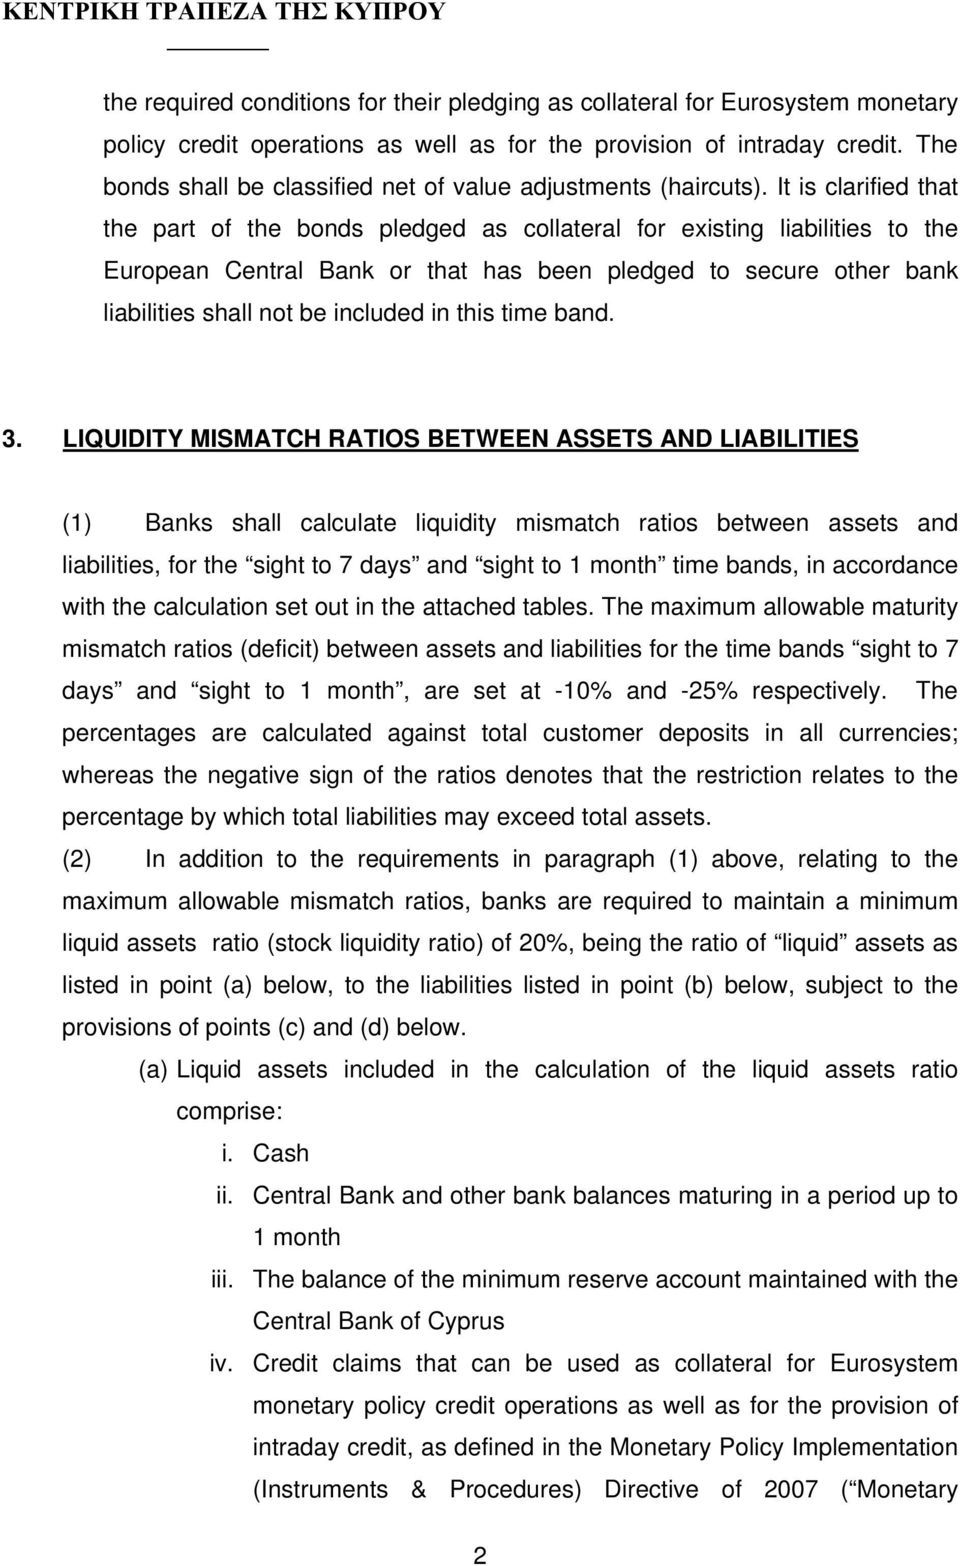 It is clarified that the part of the bonds pledged as collateral for existing liabilities to the European Central Bank or that has been pledged to secure other bank liabilities shall not be included